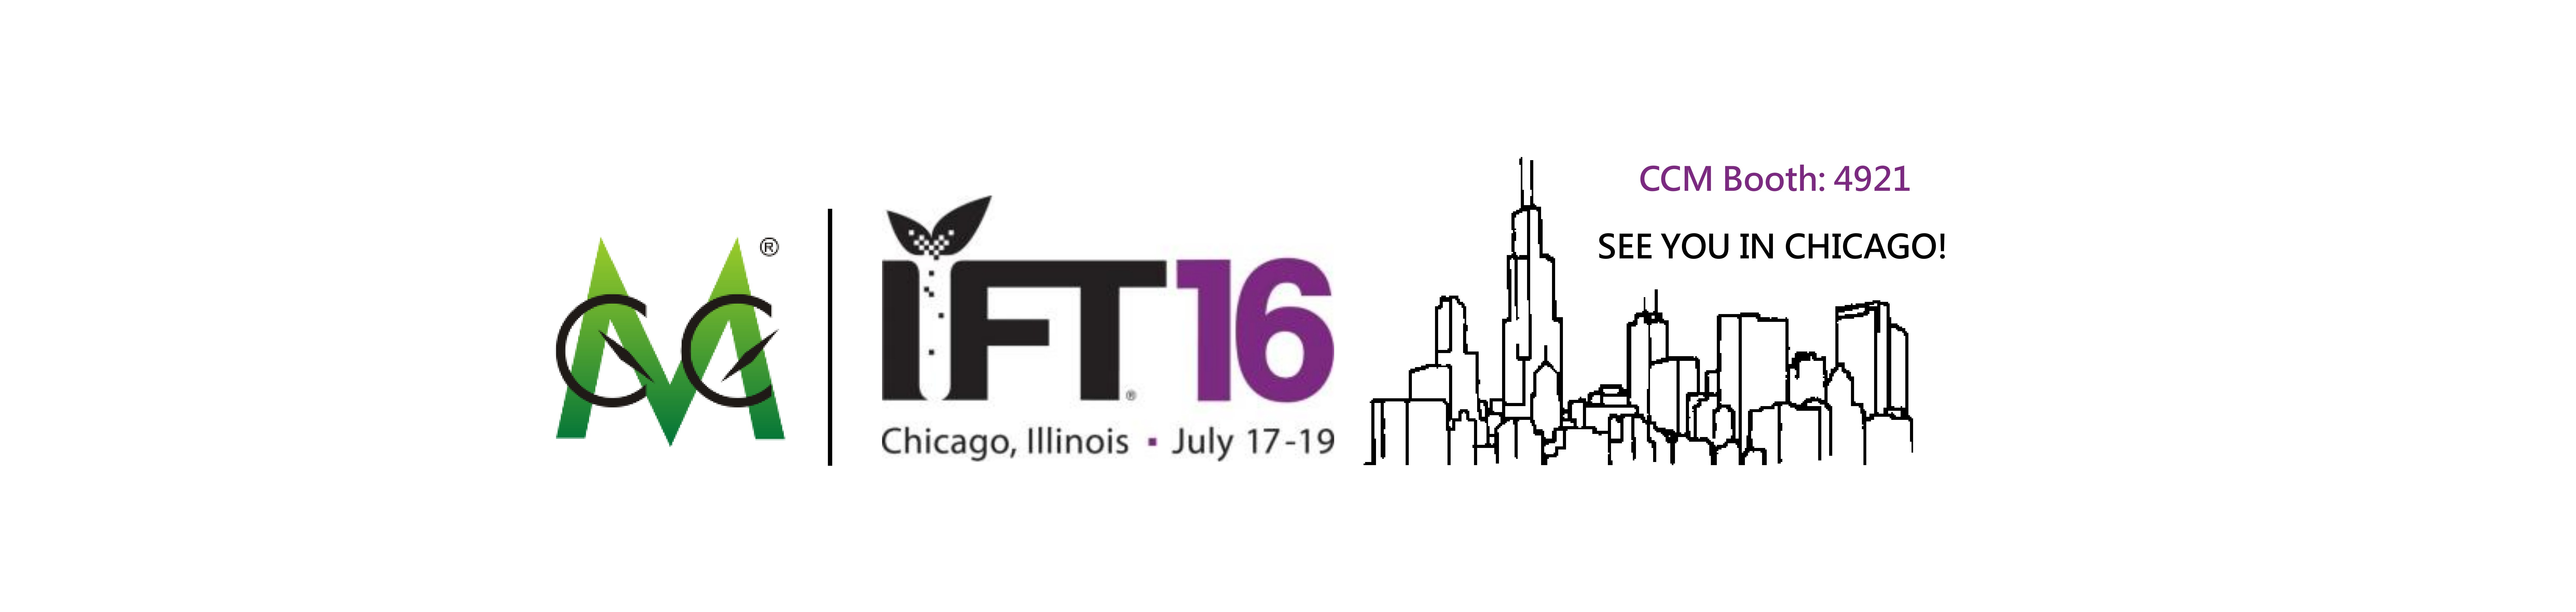 CCM to attend IFT16 in coming July in Chicago